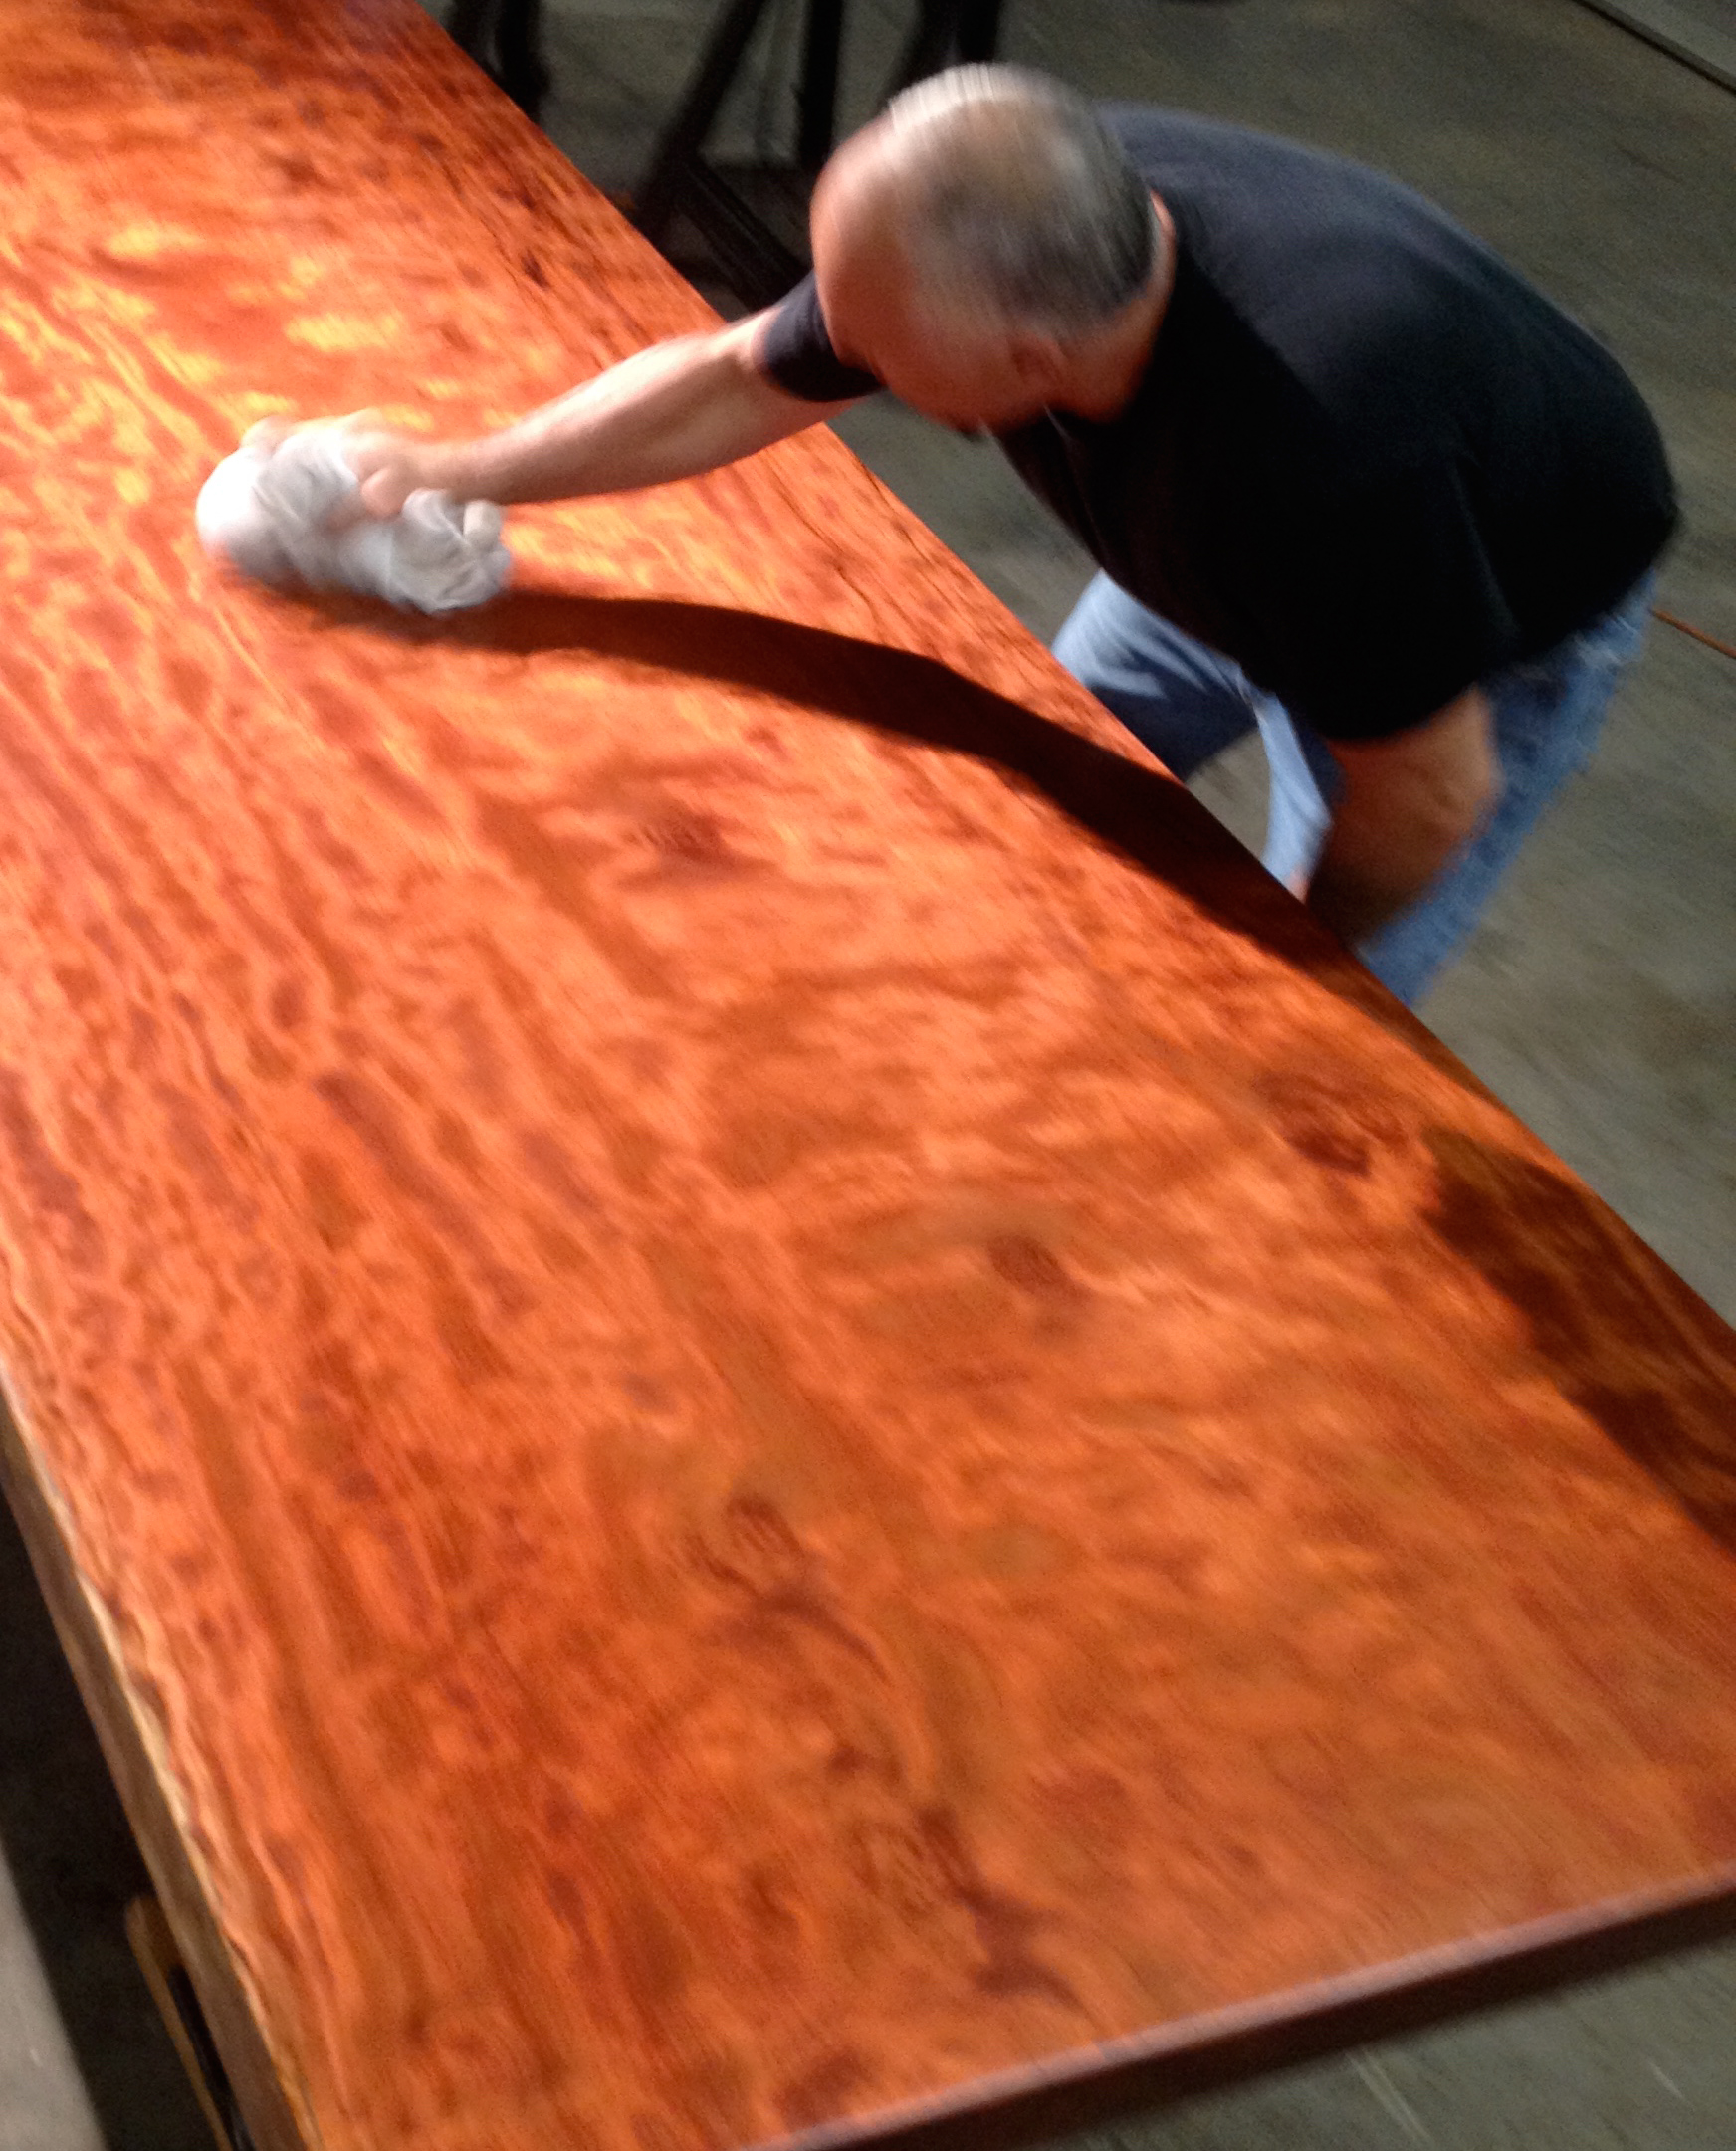 web-bubinga-table-by-jt-studio.jpg